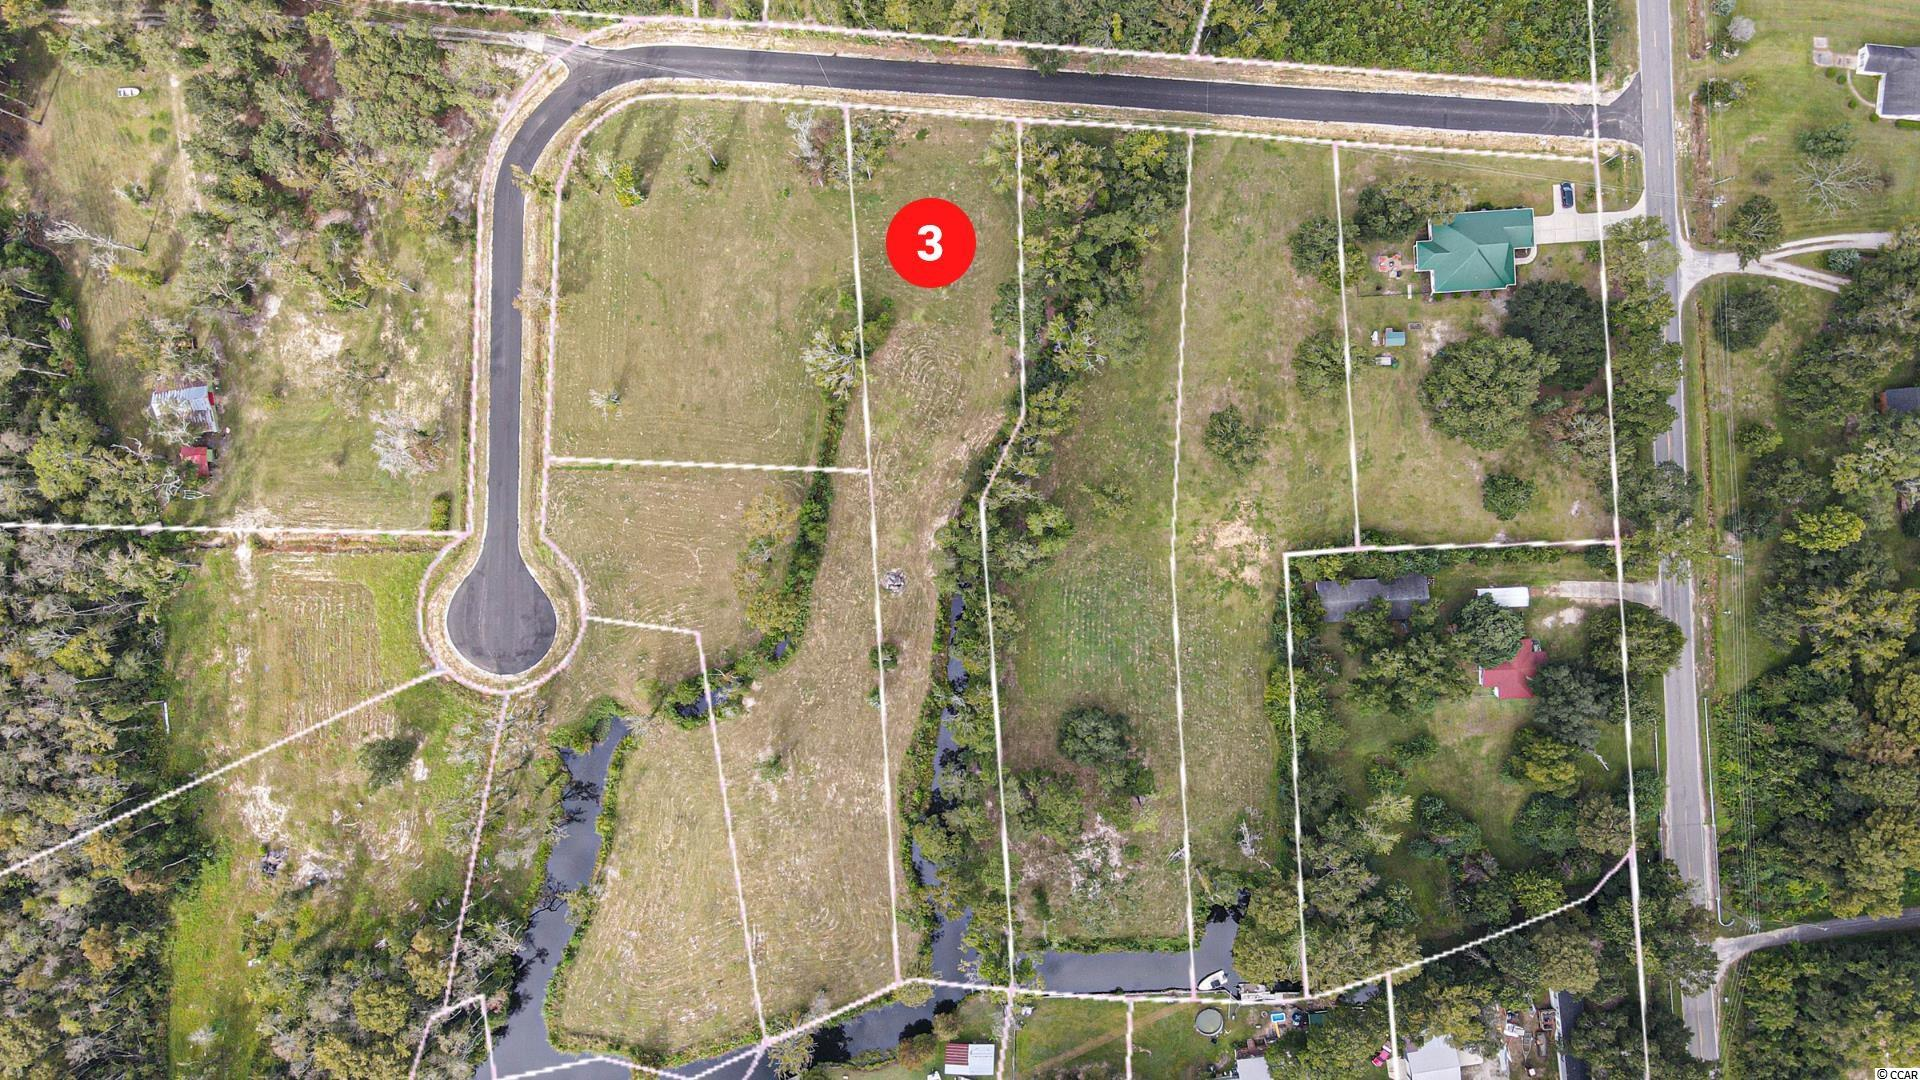 DON'T MISS OUT ON THIS INCREDIBLE OPPORTUNITY! This lot is OVER 1 FULL ACRE OF LAND in an INTRACOASTAL WATERWAY COMMUNITY! This lot gives you the opportunity to build your dream home! Being in such a great location, you are only minutes to the beach, Market Commons, Coastal Grand Mall, Broadway at the beach, delicious restaurants, shops, and so much more! Being in this Intracoastal Waterway community of Peachtree Estates, you can enjoy all the water activities just walking distance from your home perfect for all the summertime fun! Book your showing today!